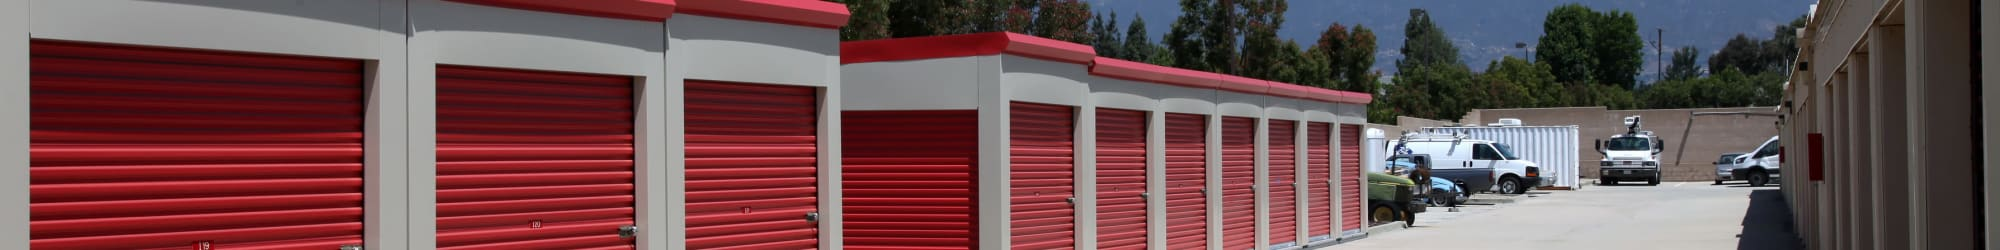 Contact us today at Trojan Storage in Rancho Cucamonga, California